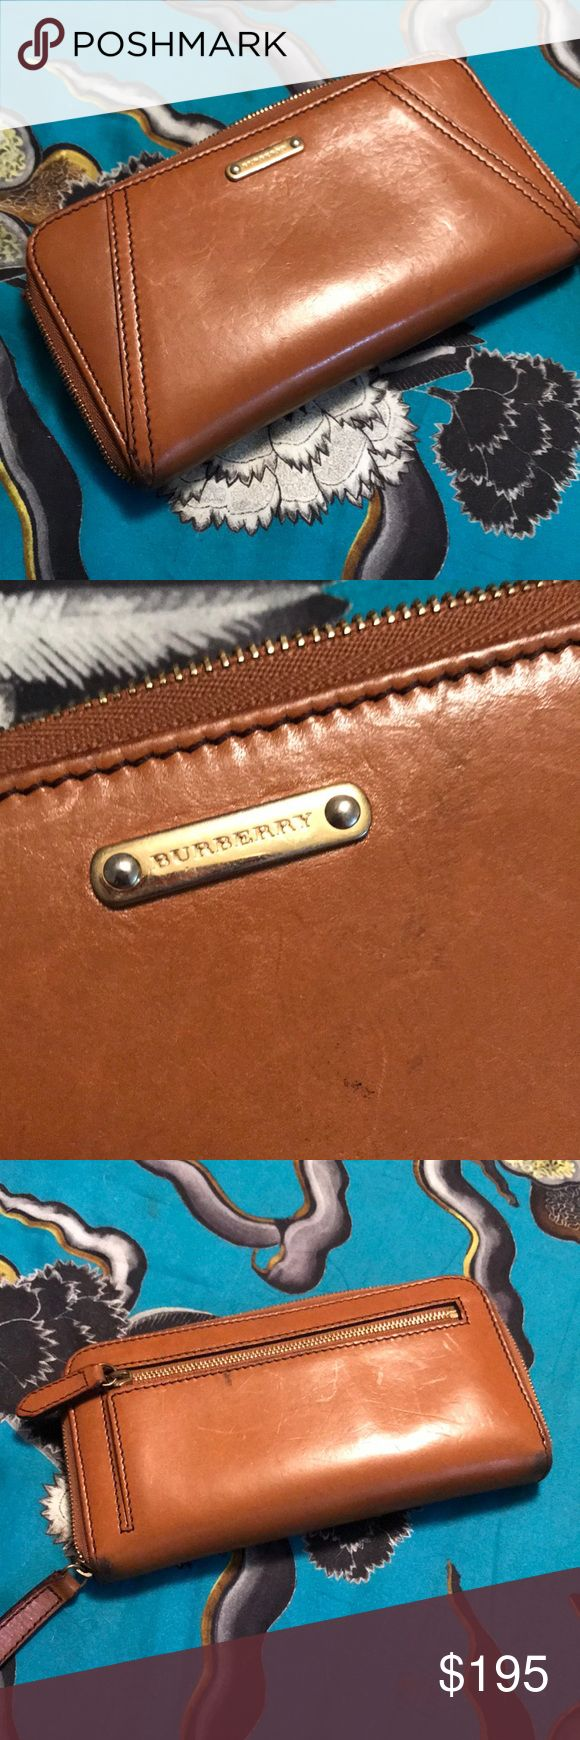 Burberry Slim Ziggy Wallet Great Burberry Zip Wallet with signature plaid inside.  Small signs of wear as shown. Purchased new at Burberry on Michigan Ave in Chicago. Guaranteed authentic!  THIS ITEM IS ALSO FOR SALE LOCALLY AND COULD BE GONE IMMEDIATELY! If you want it, better grab it! Make me an offer! Burberry Bags Wallets